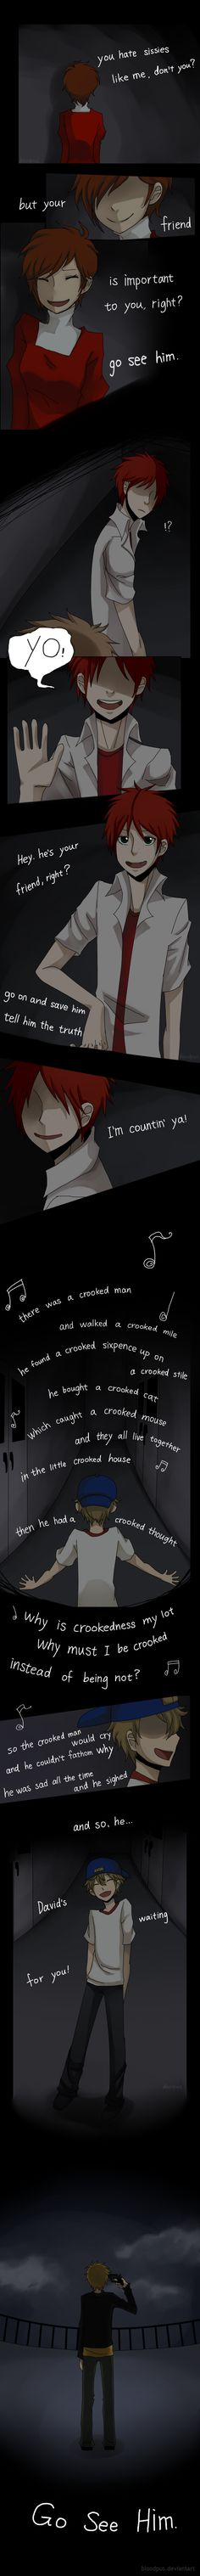 The crooked man by Bloodpus.deviantart.com on @DeviantArt